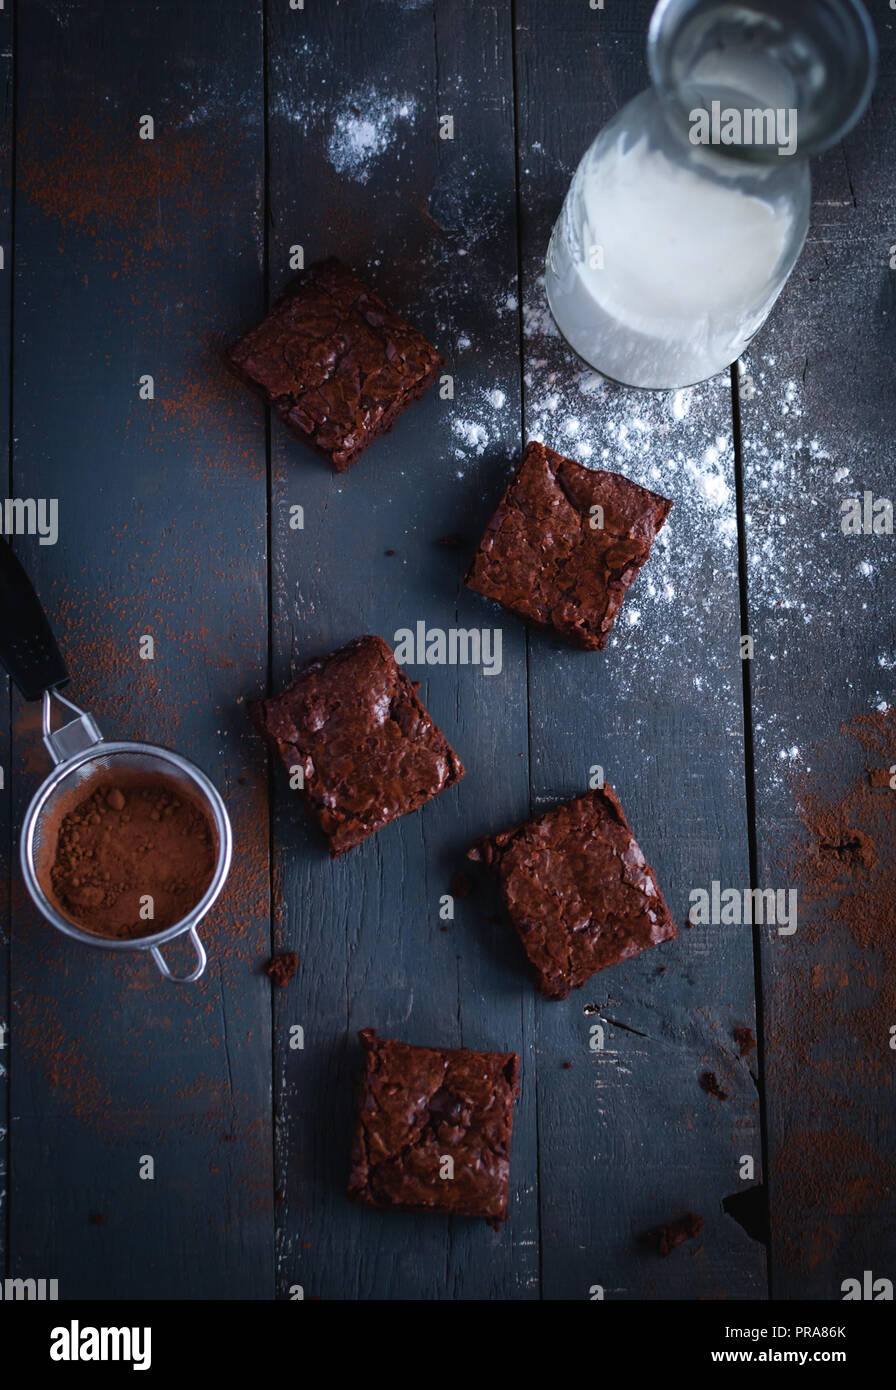 Homemade brownies on dark background, top view Stock Photo